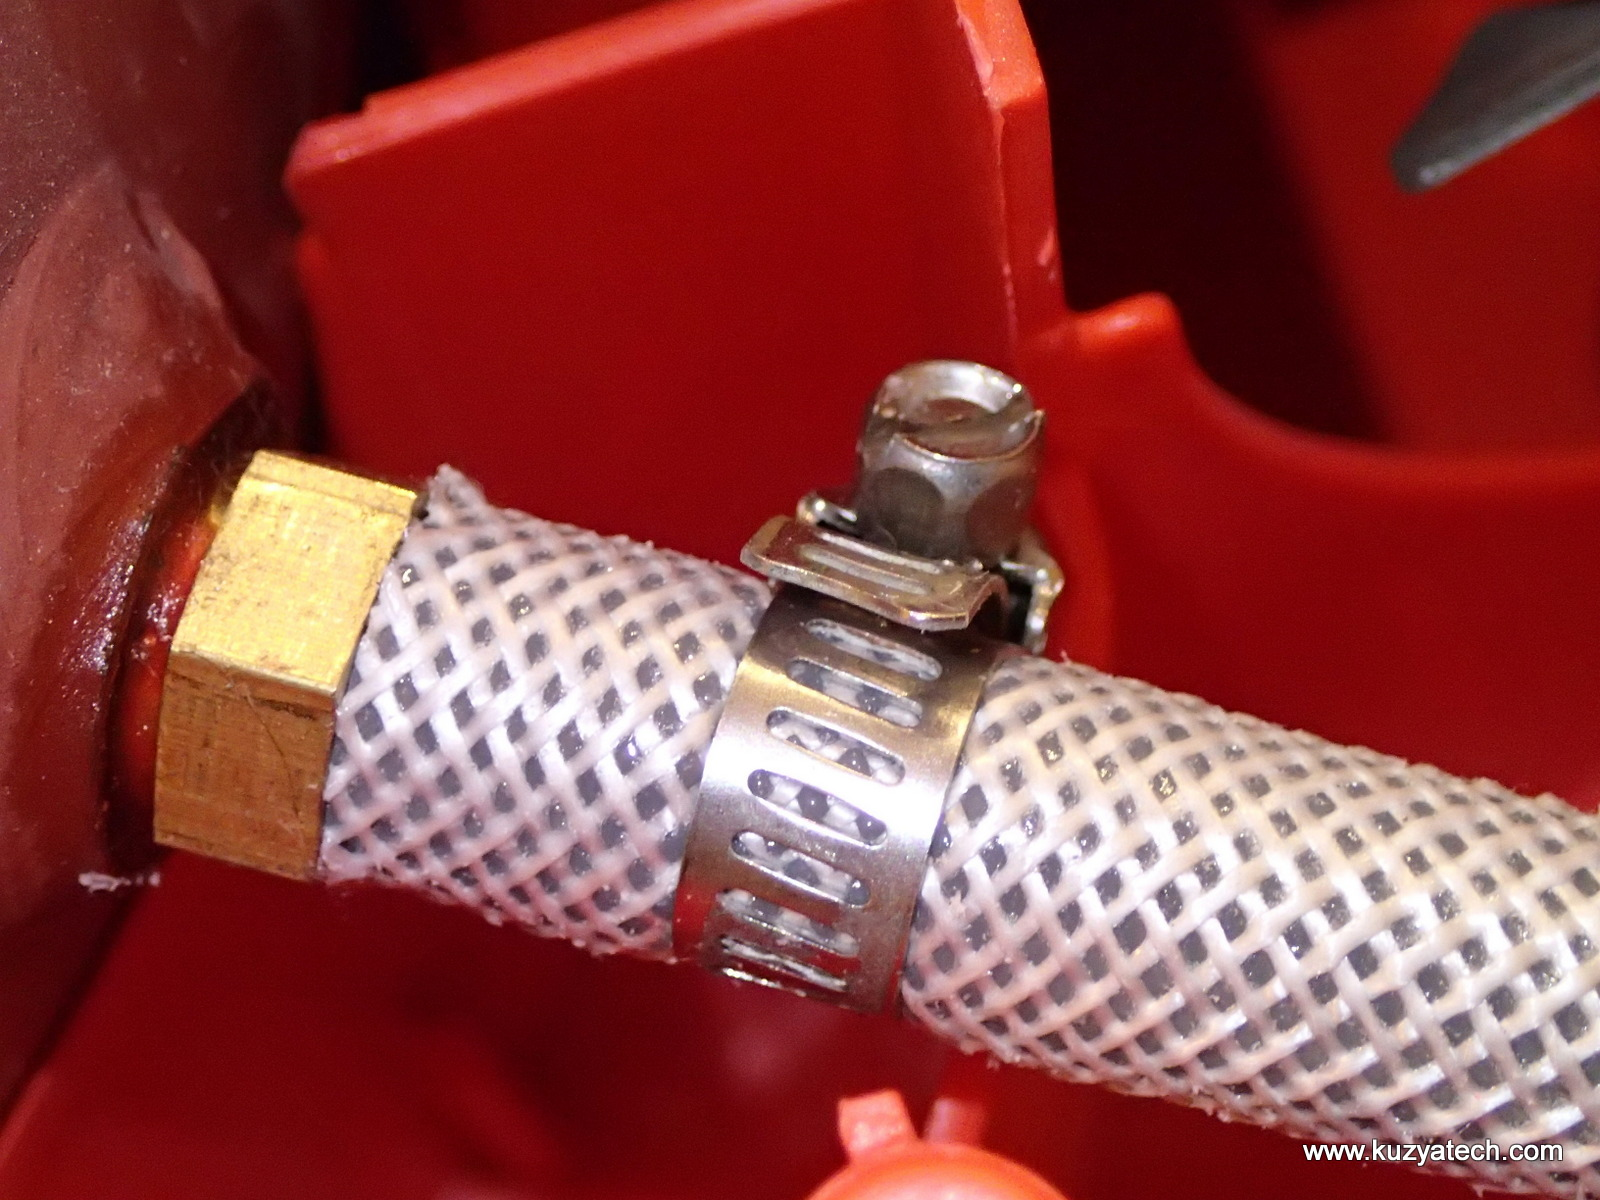 Replace and tighten the clamp